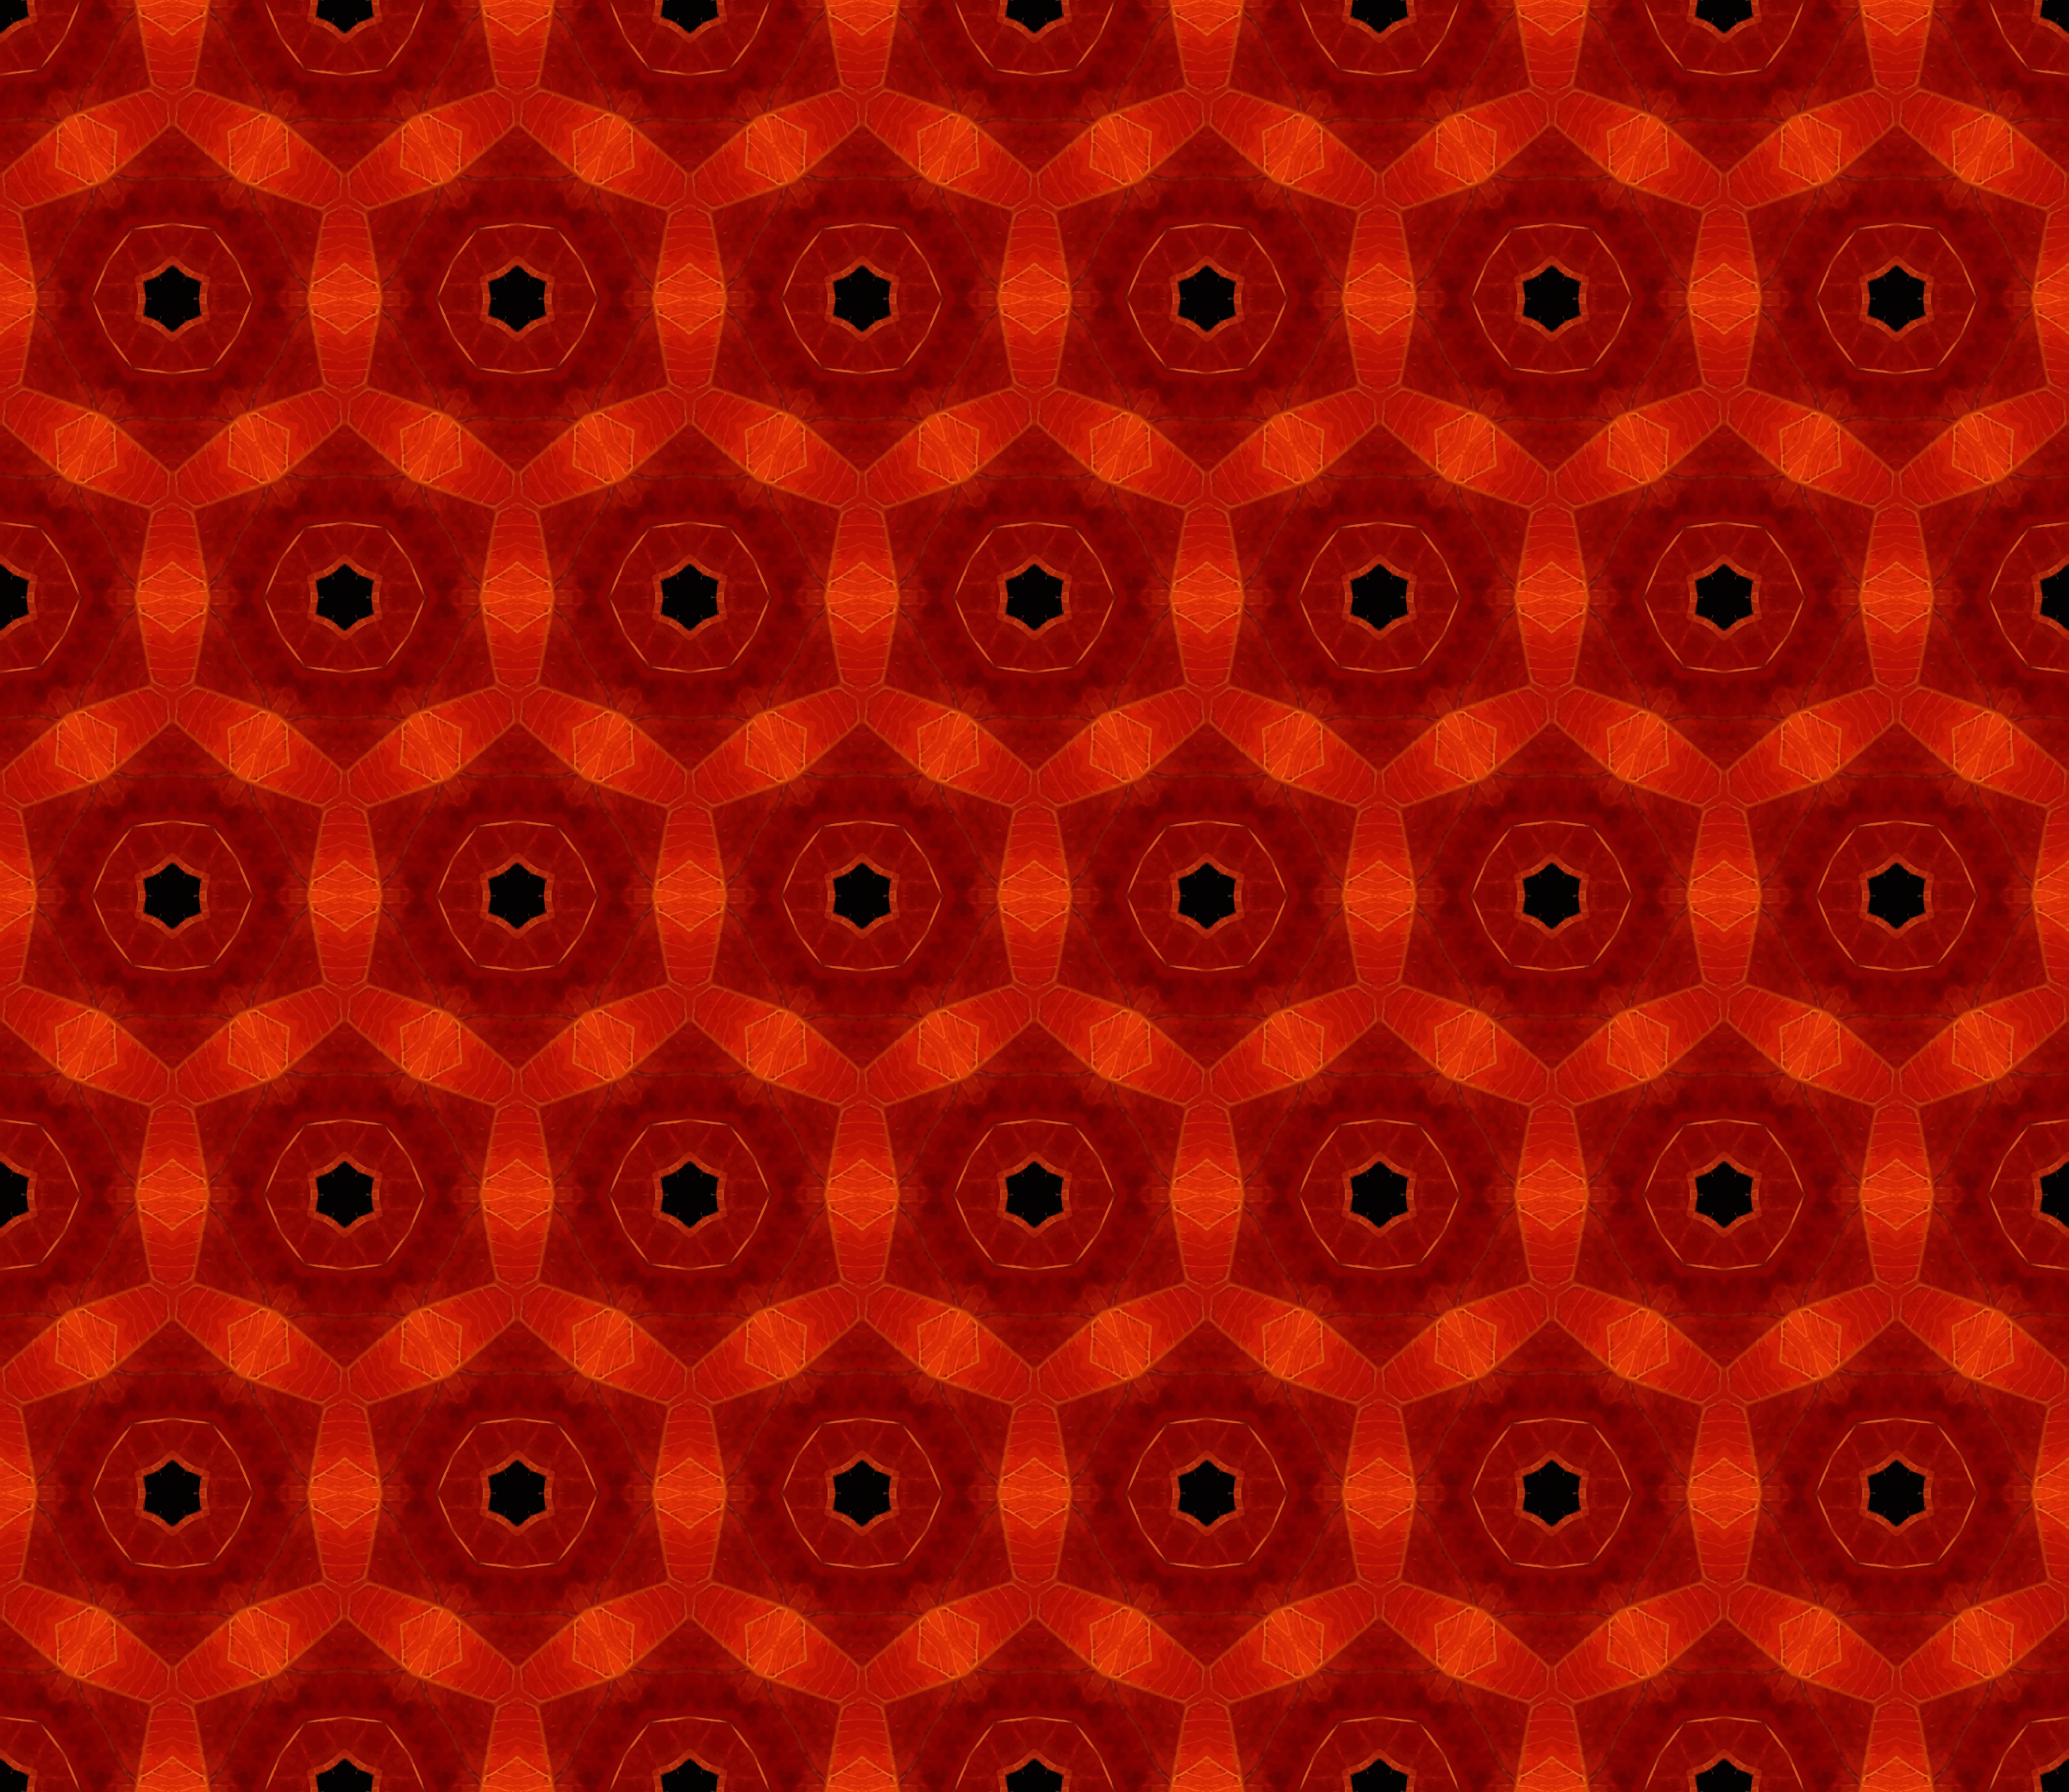 Background pattern 169 by Firkin